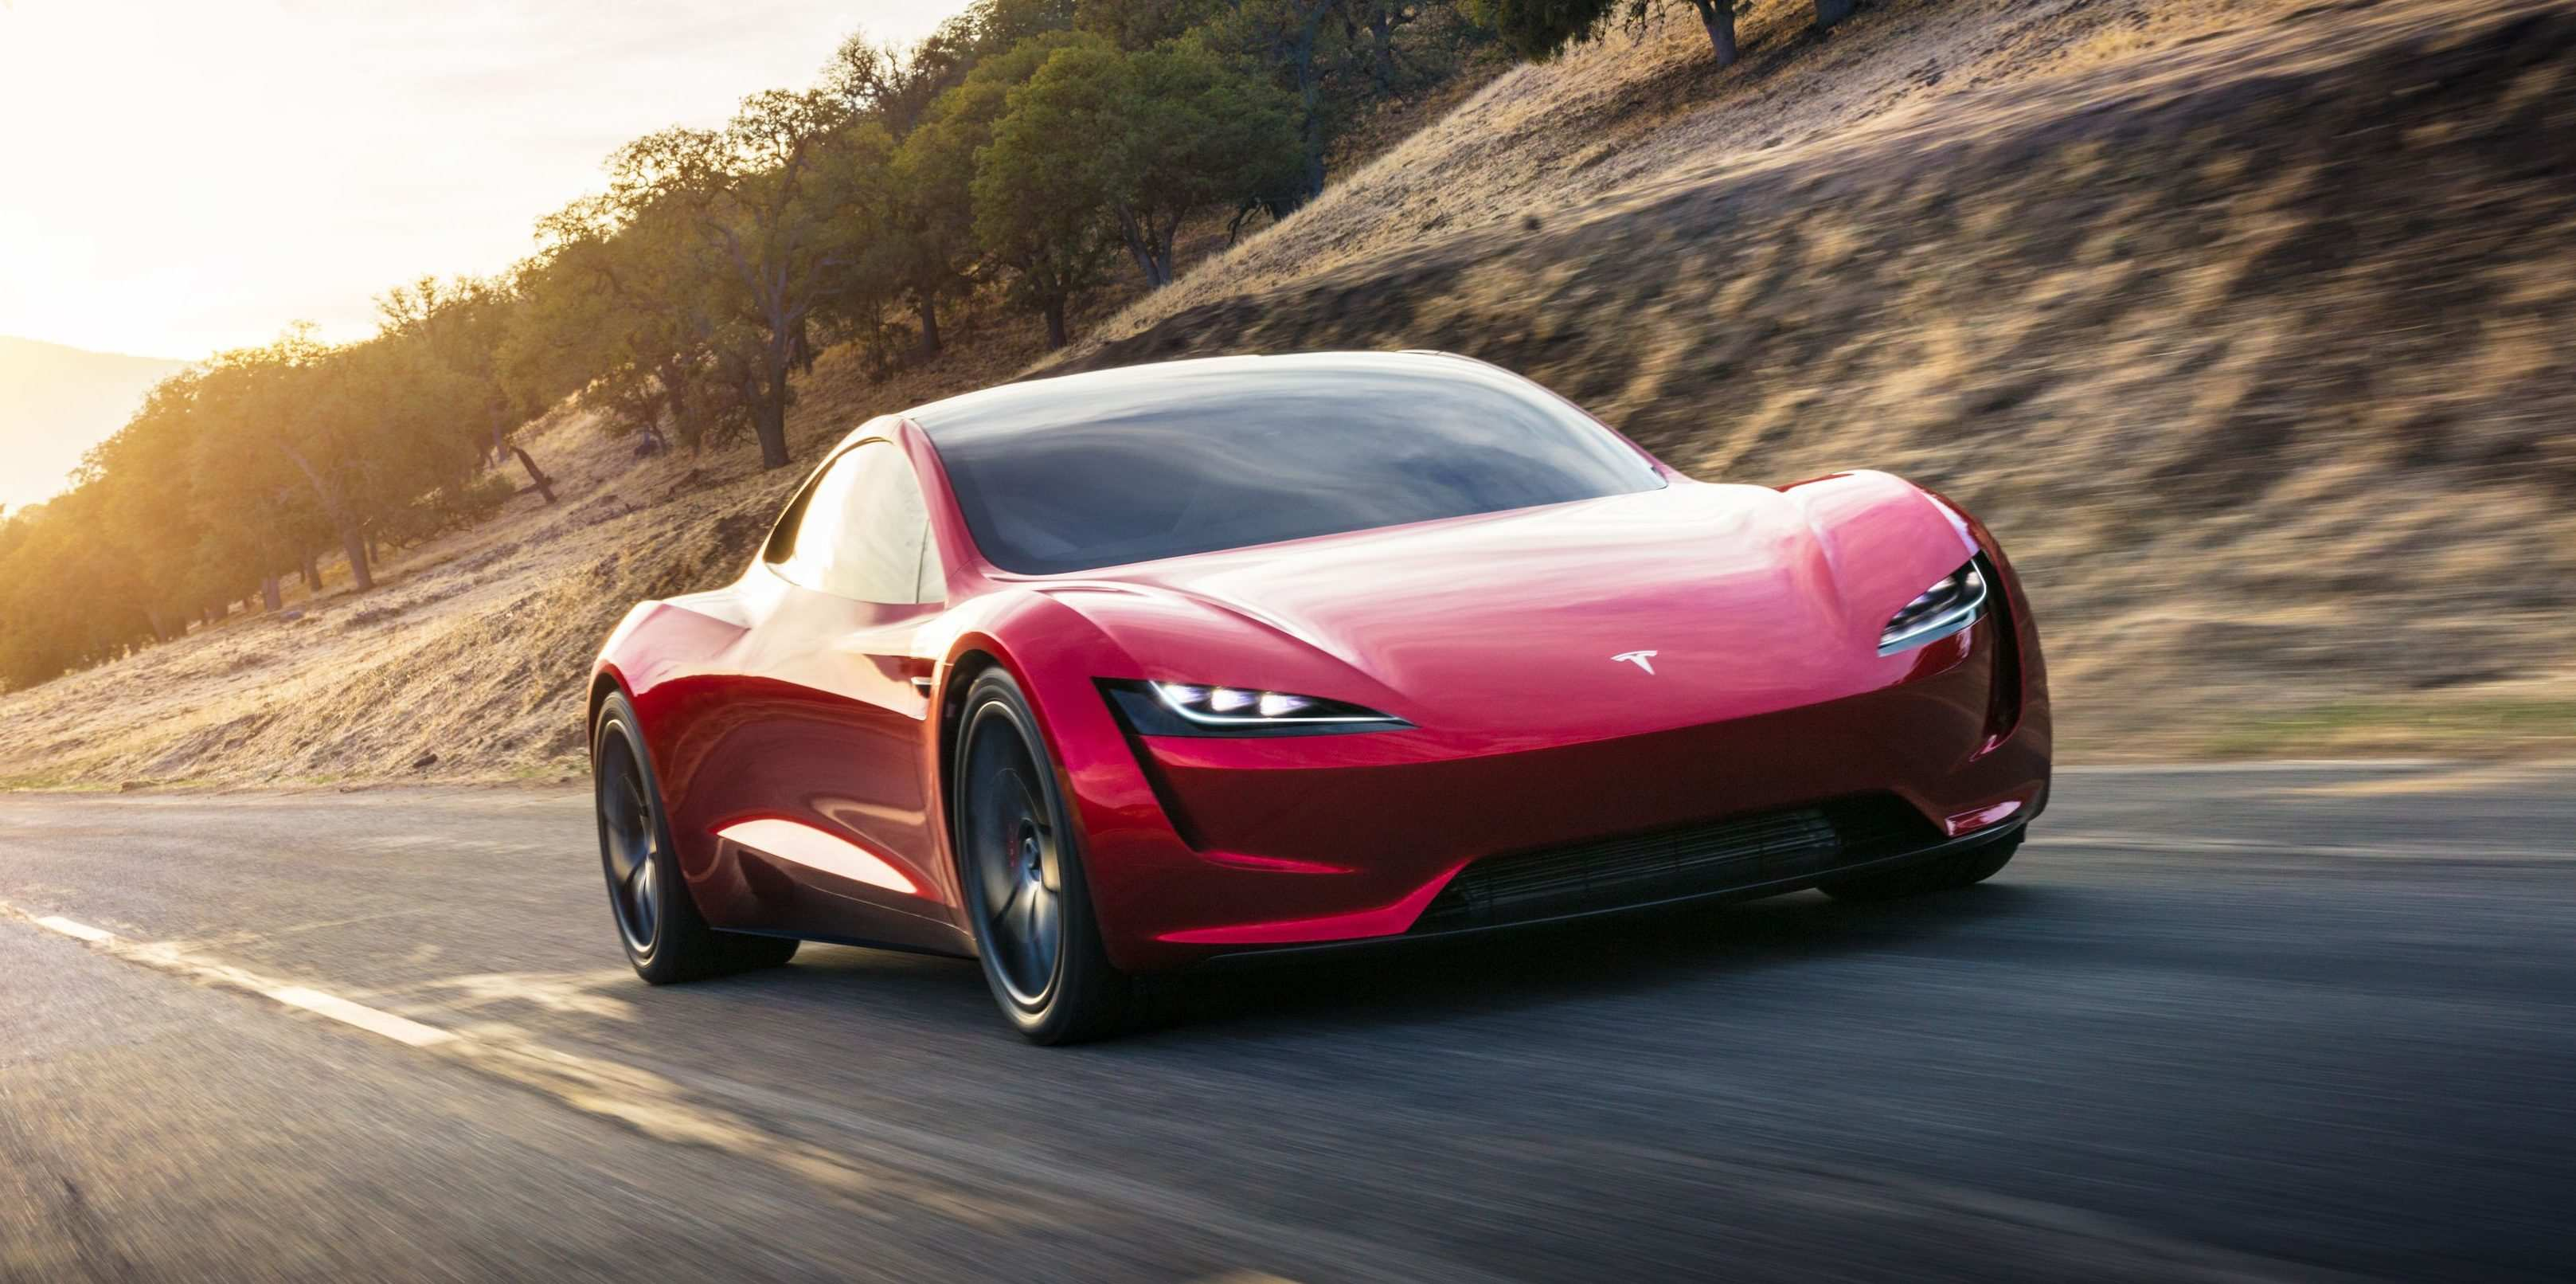 16 A 2020 Tesla Roadster Battery Exterior And Interior